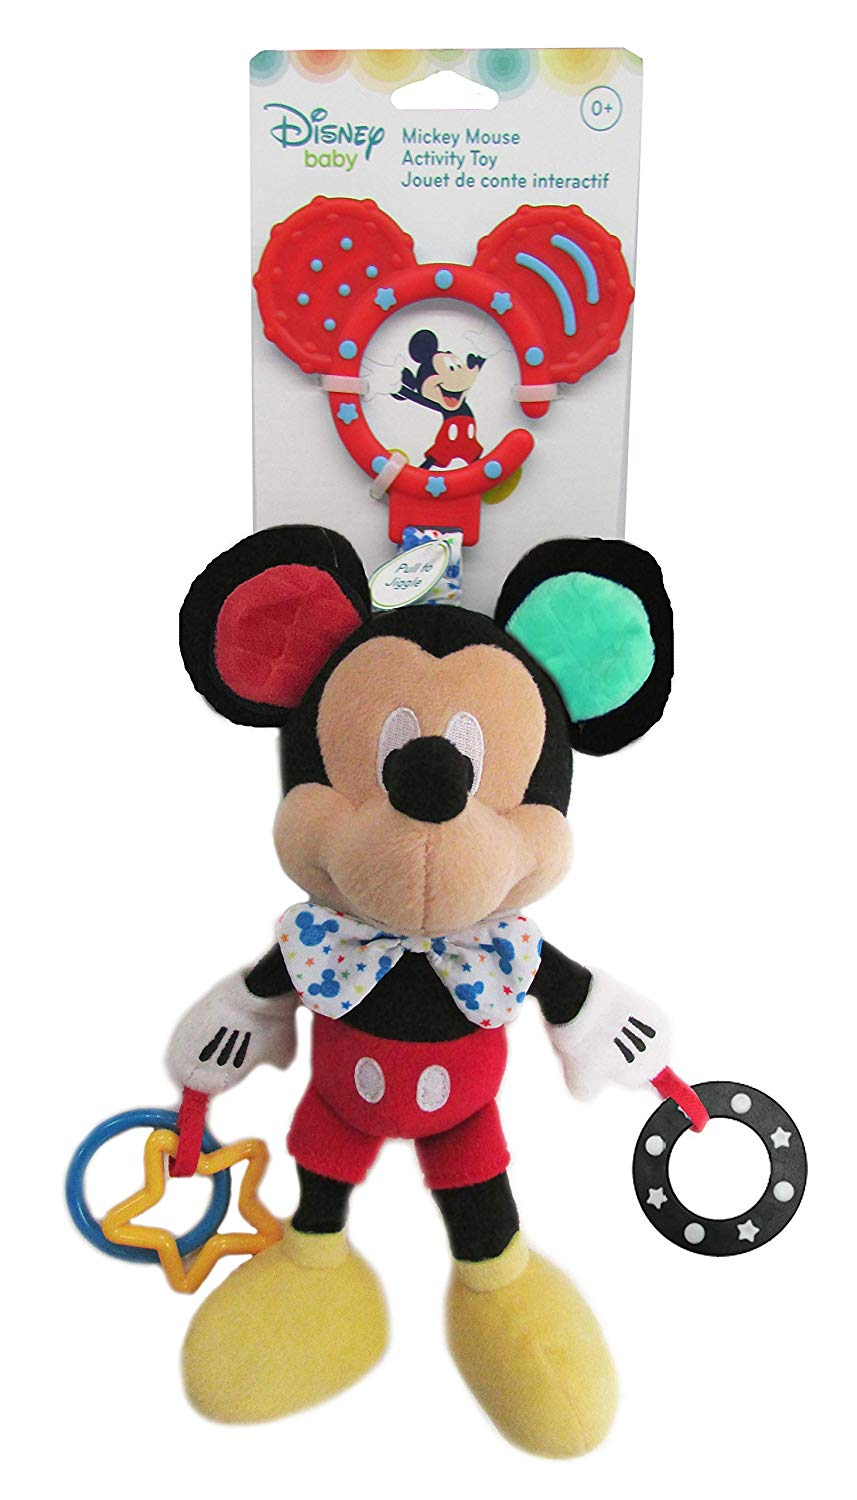 Disney Baby Mickey Mouse Baby Attachable Activity Toy